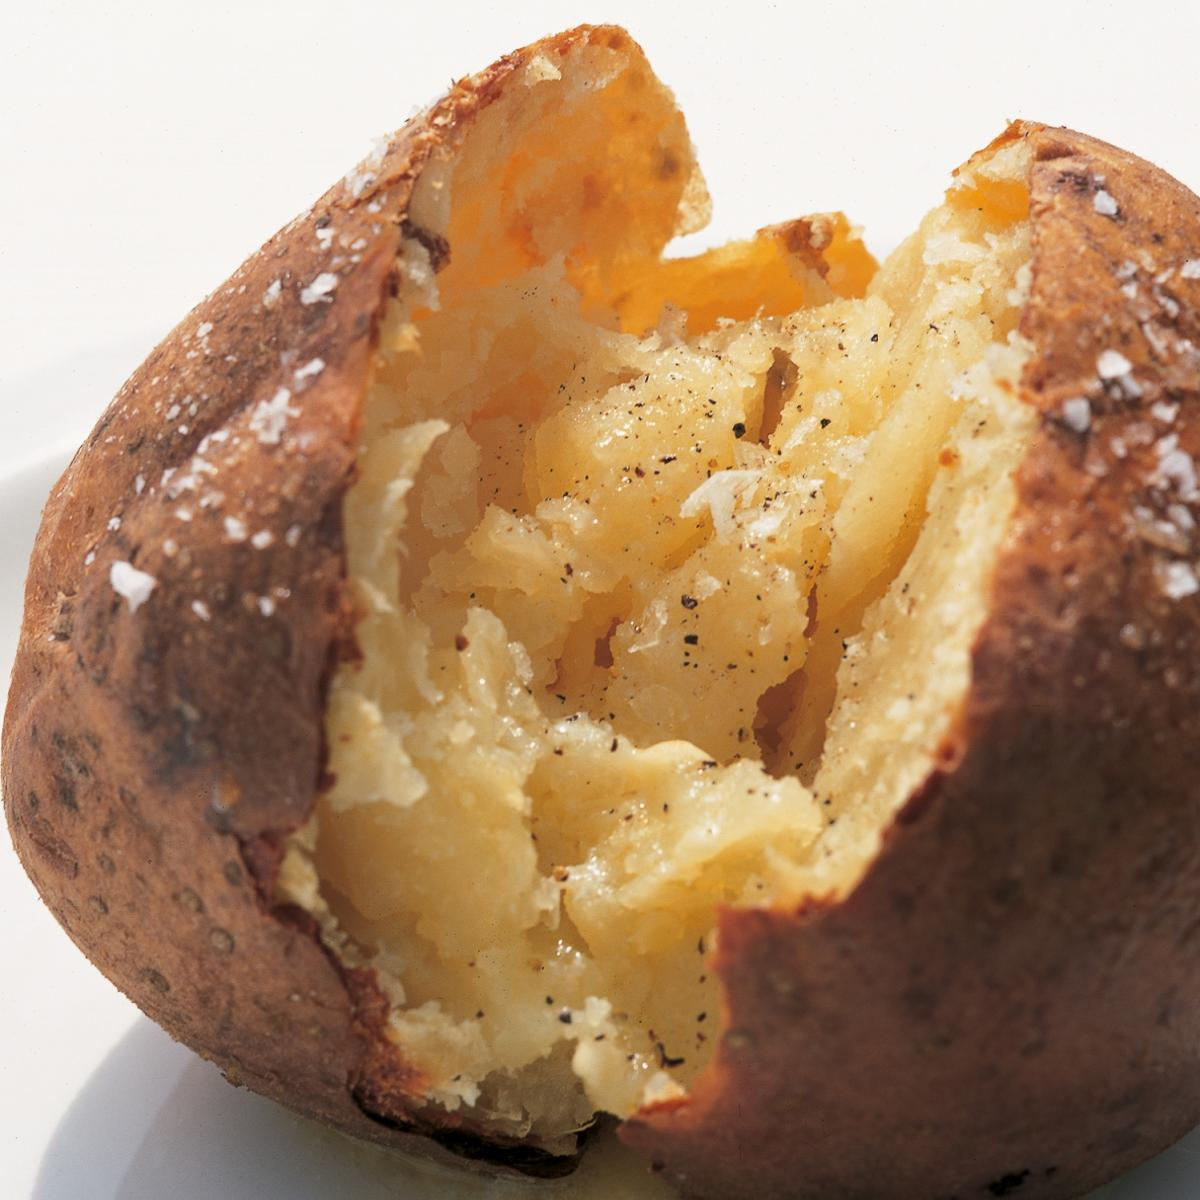 Htc jacket potatoes